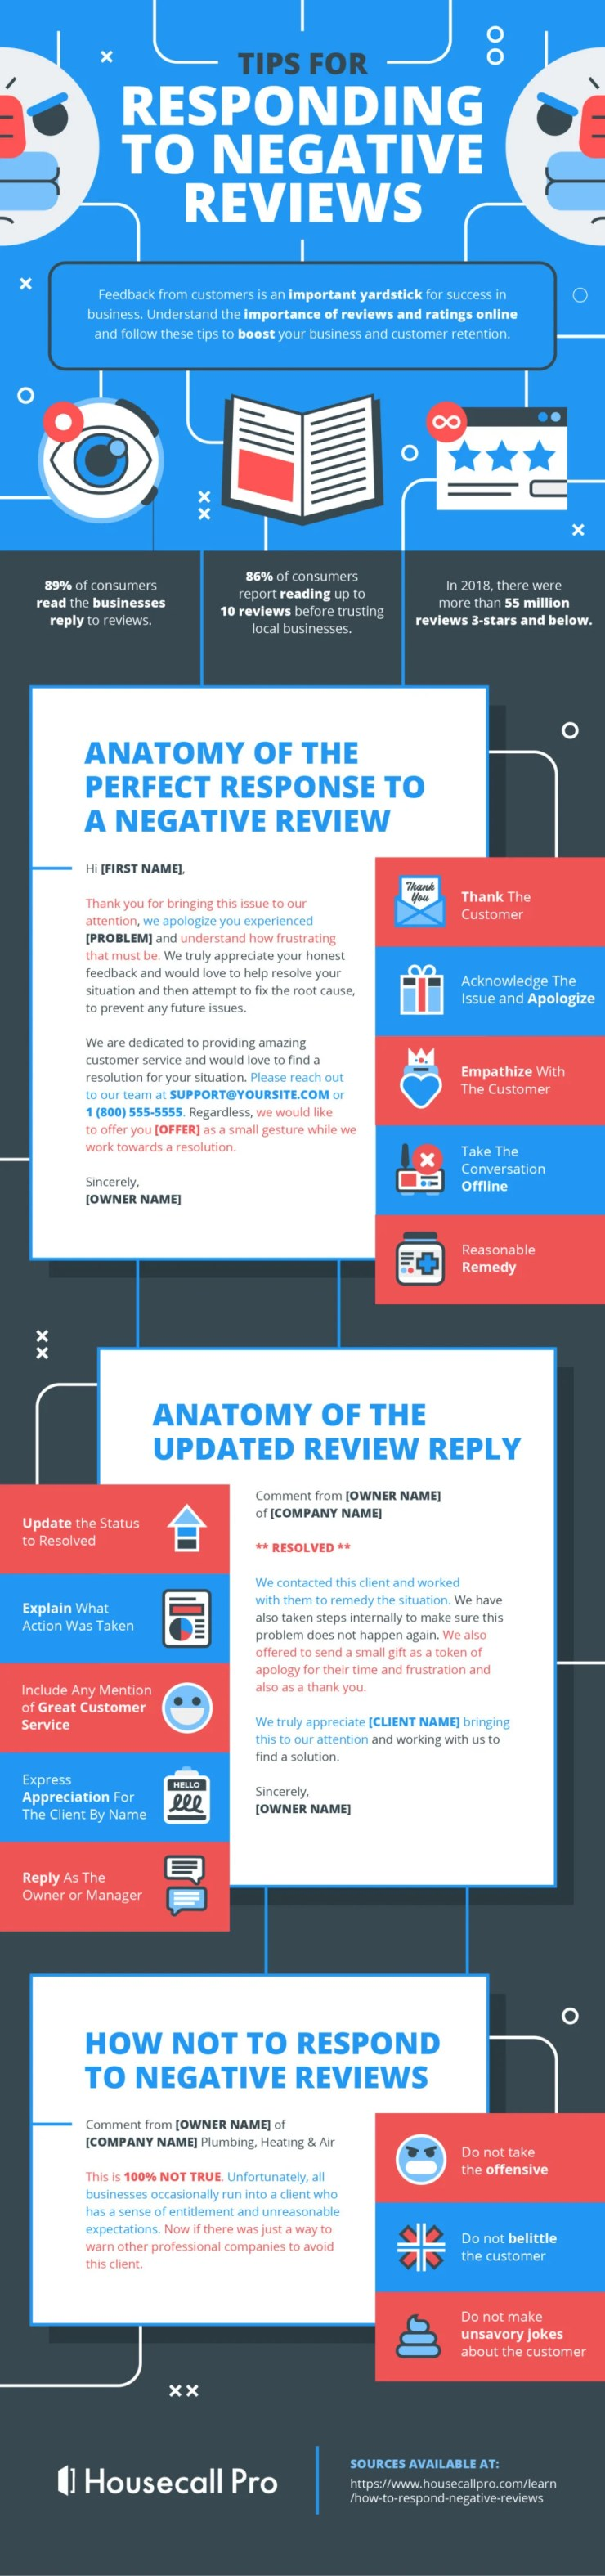 Infographic outlines how to deal with customer complaints